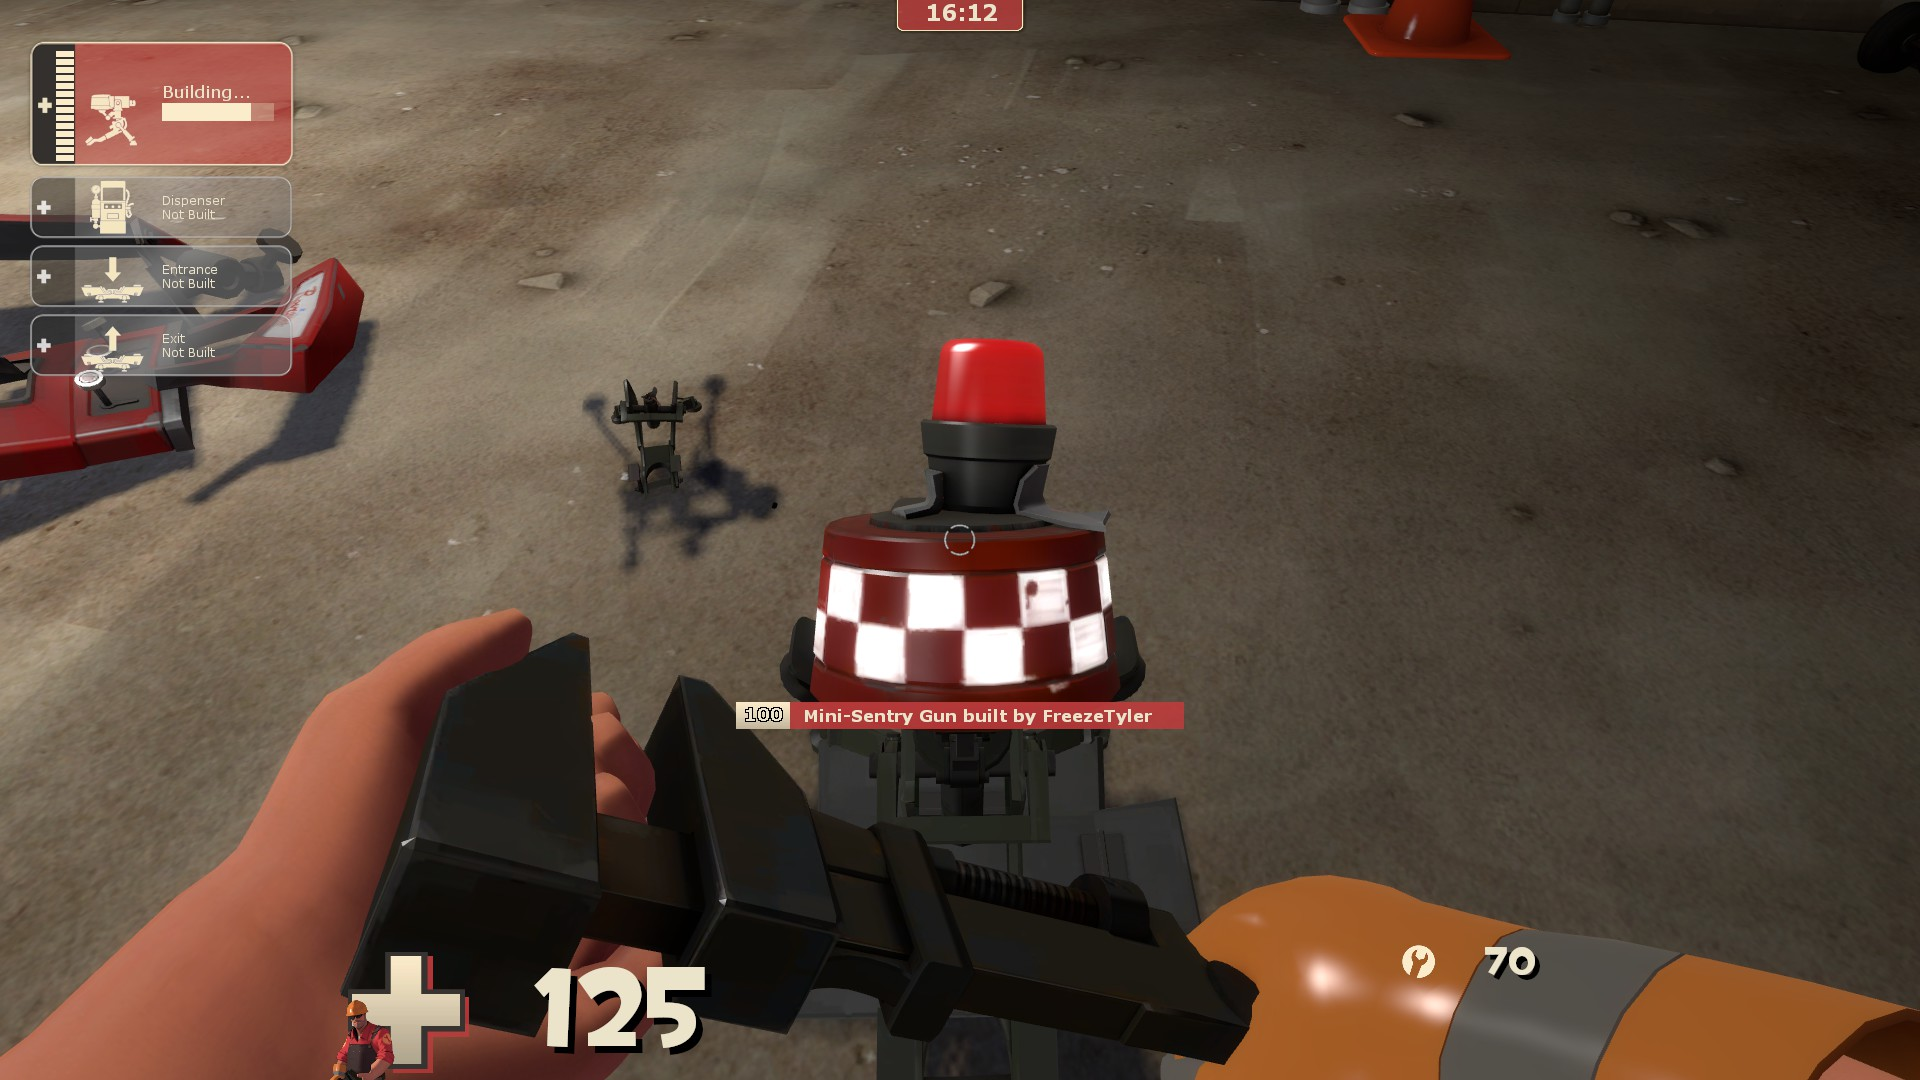 TF2]Use any wrench with Mini-Sentry · Issue #896 · ValveSoftware